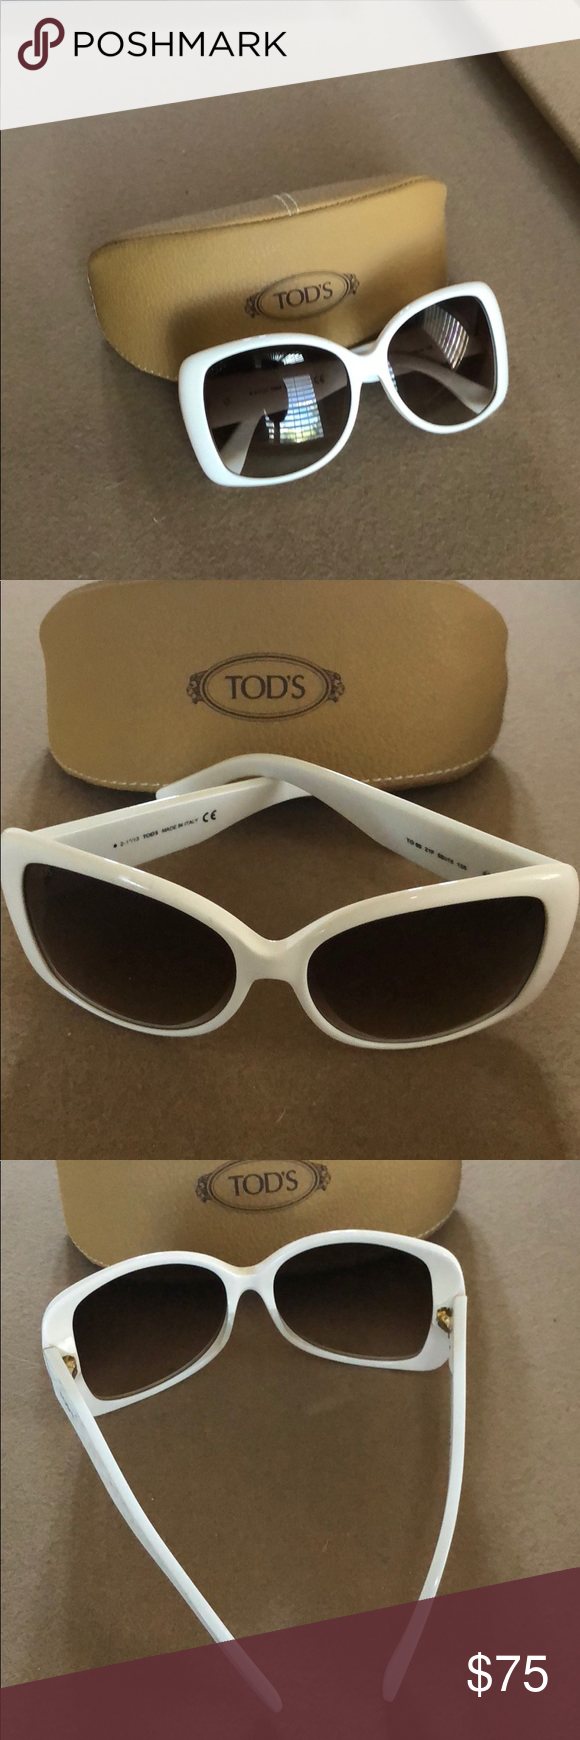 64f8079af7eb1 Tod s Sunglasses TO85 21F Authentic Tod s Sunglasses TO85 21F